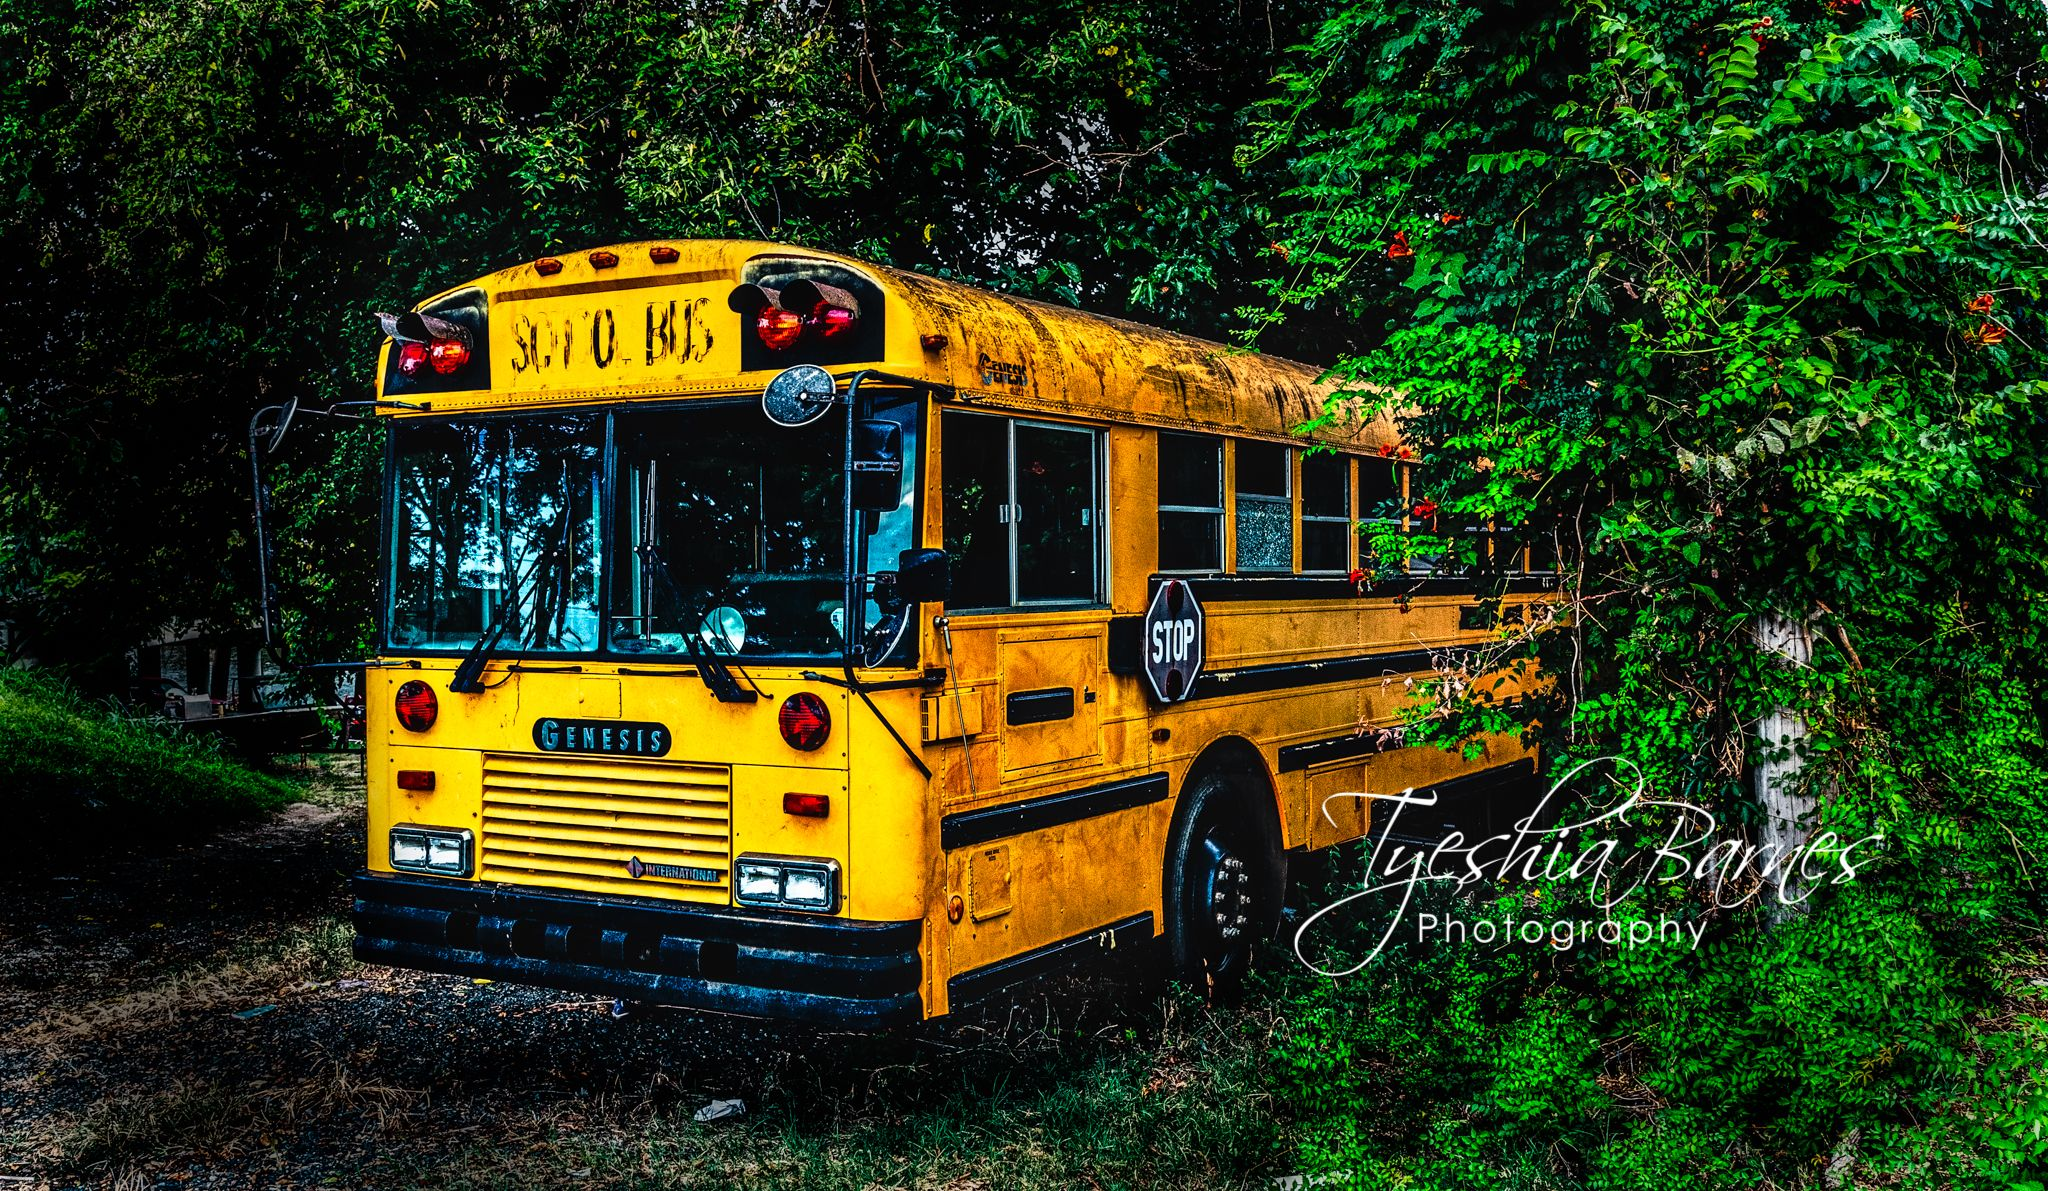 Memories of a school bus #naturephotography #landscapephotography #travel #travelphotographer #nature #landscape #school #bus #schoolbus #photographylover #photographylovers #photographylife #photographyislife #fineart #fineartphotography